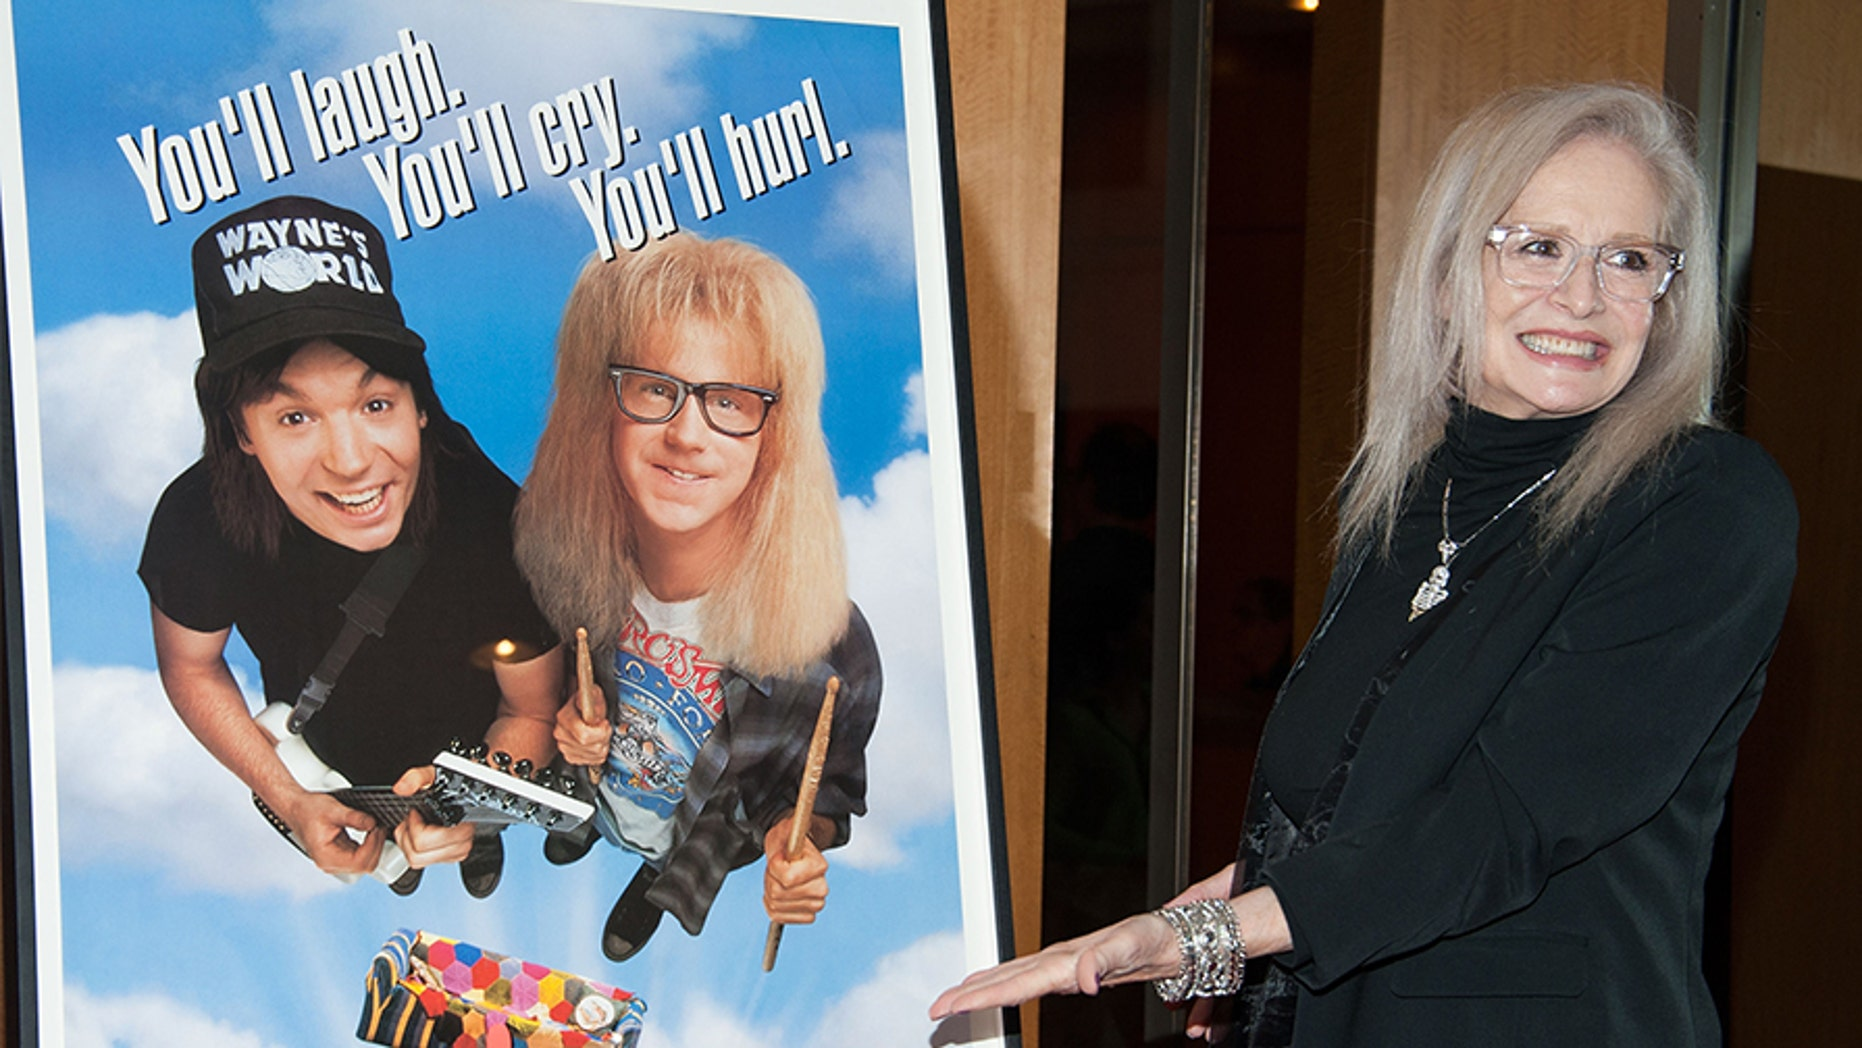 Director Penelope Spheeris attends Academy Of Motion Picture Arts And Sciences Hosts A Wayne's World Reunion during AMPAS Samuel Goldwyn Theater on Apr 23, 2013 in Beverly Hills, California. — Getty